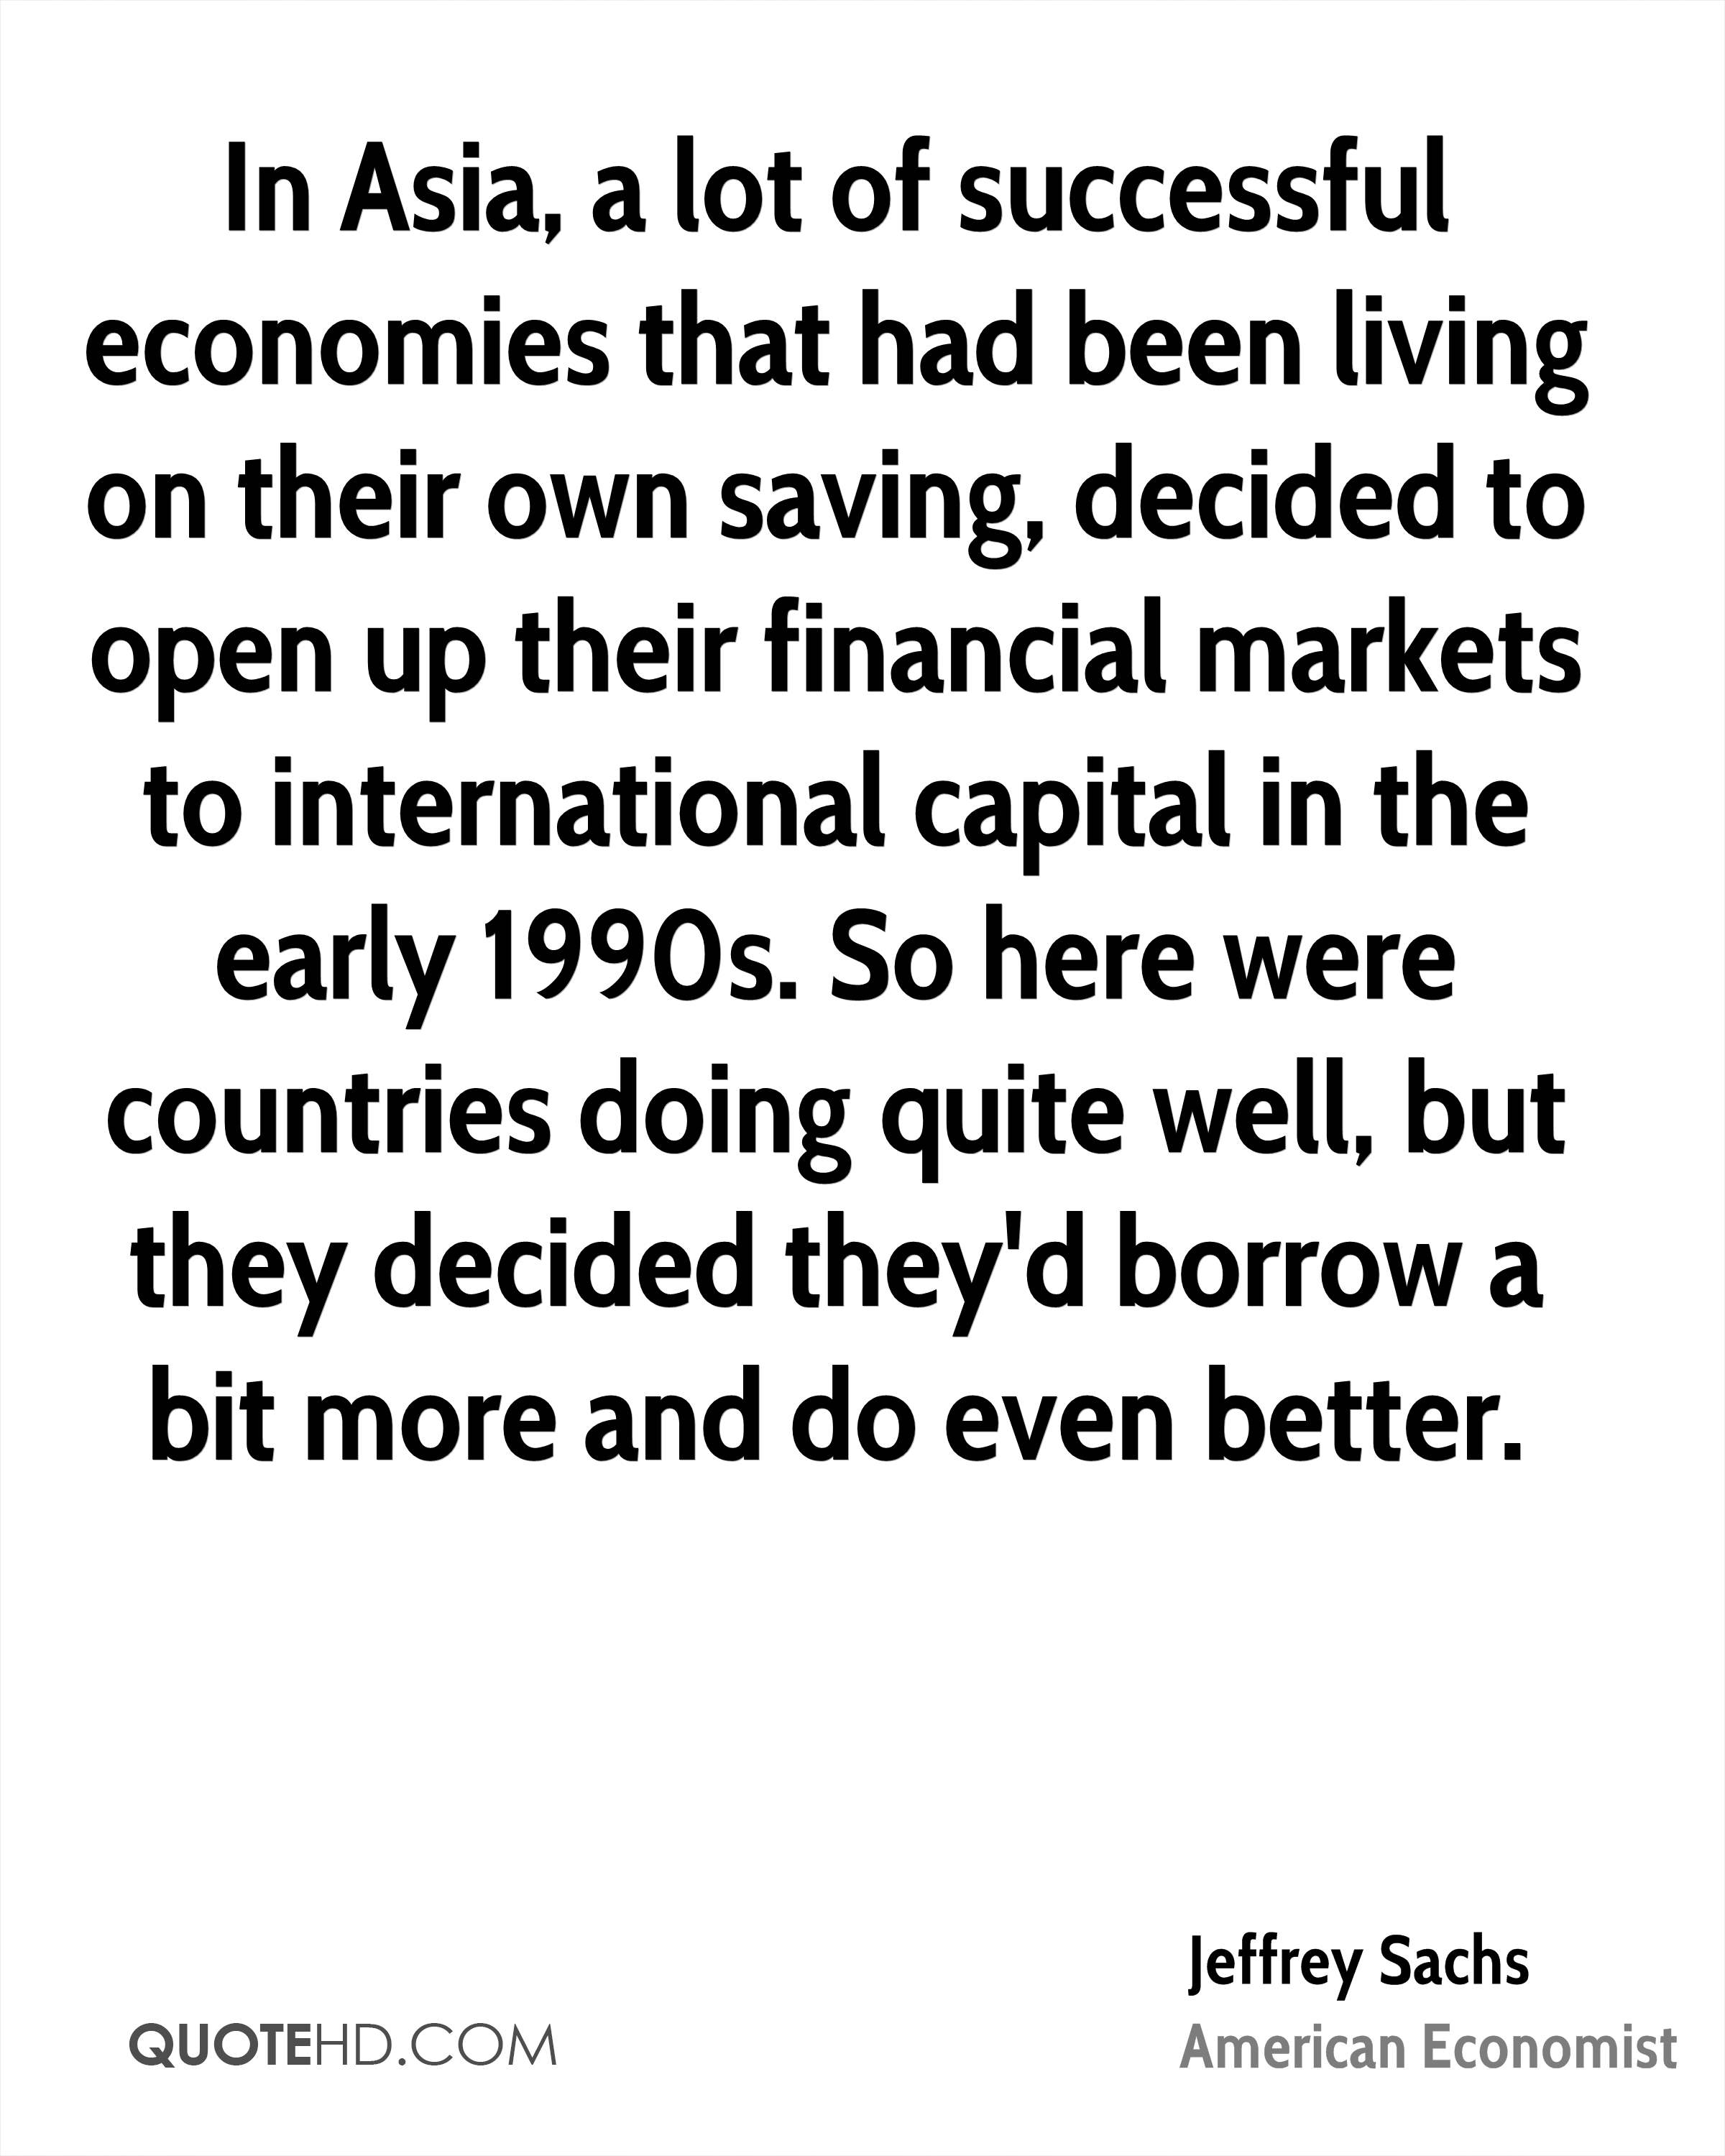 In Asia, a lot of successful economies that had been living on their own saving, decided to open up their financial markets to international capital in the early 1990s. So here were countries doing quite well, but they decided they'd borrow a bit more and do even better.